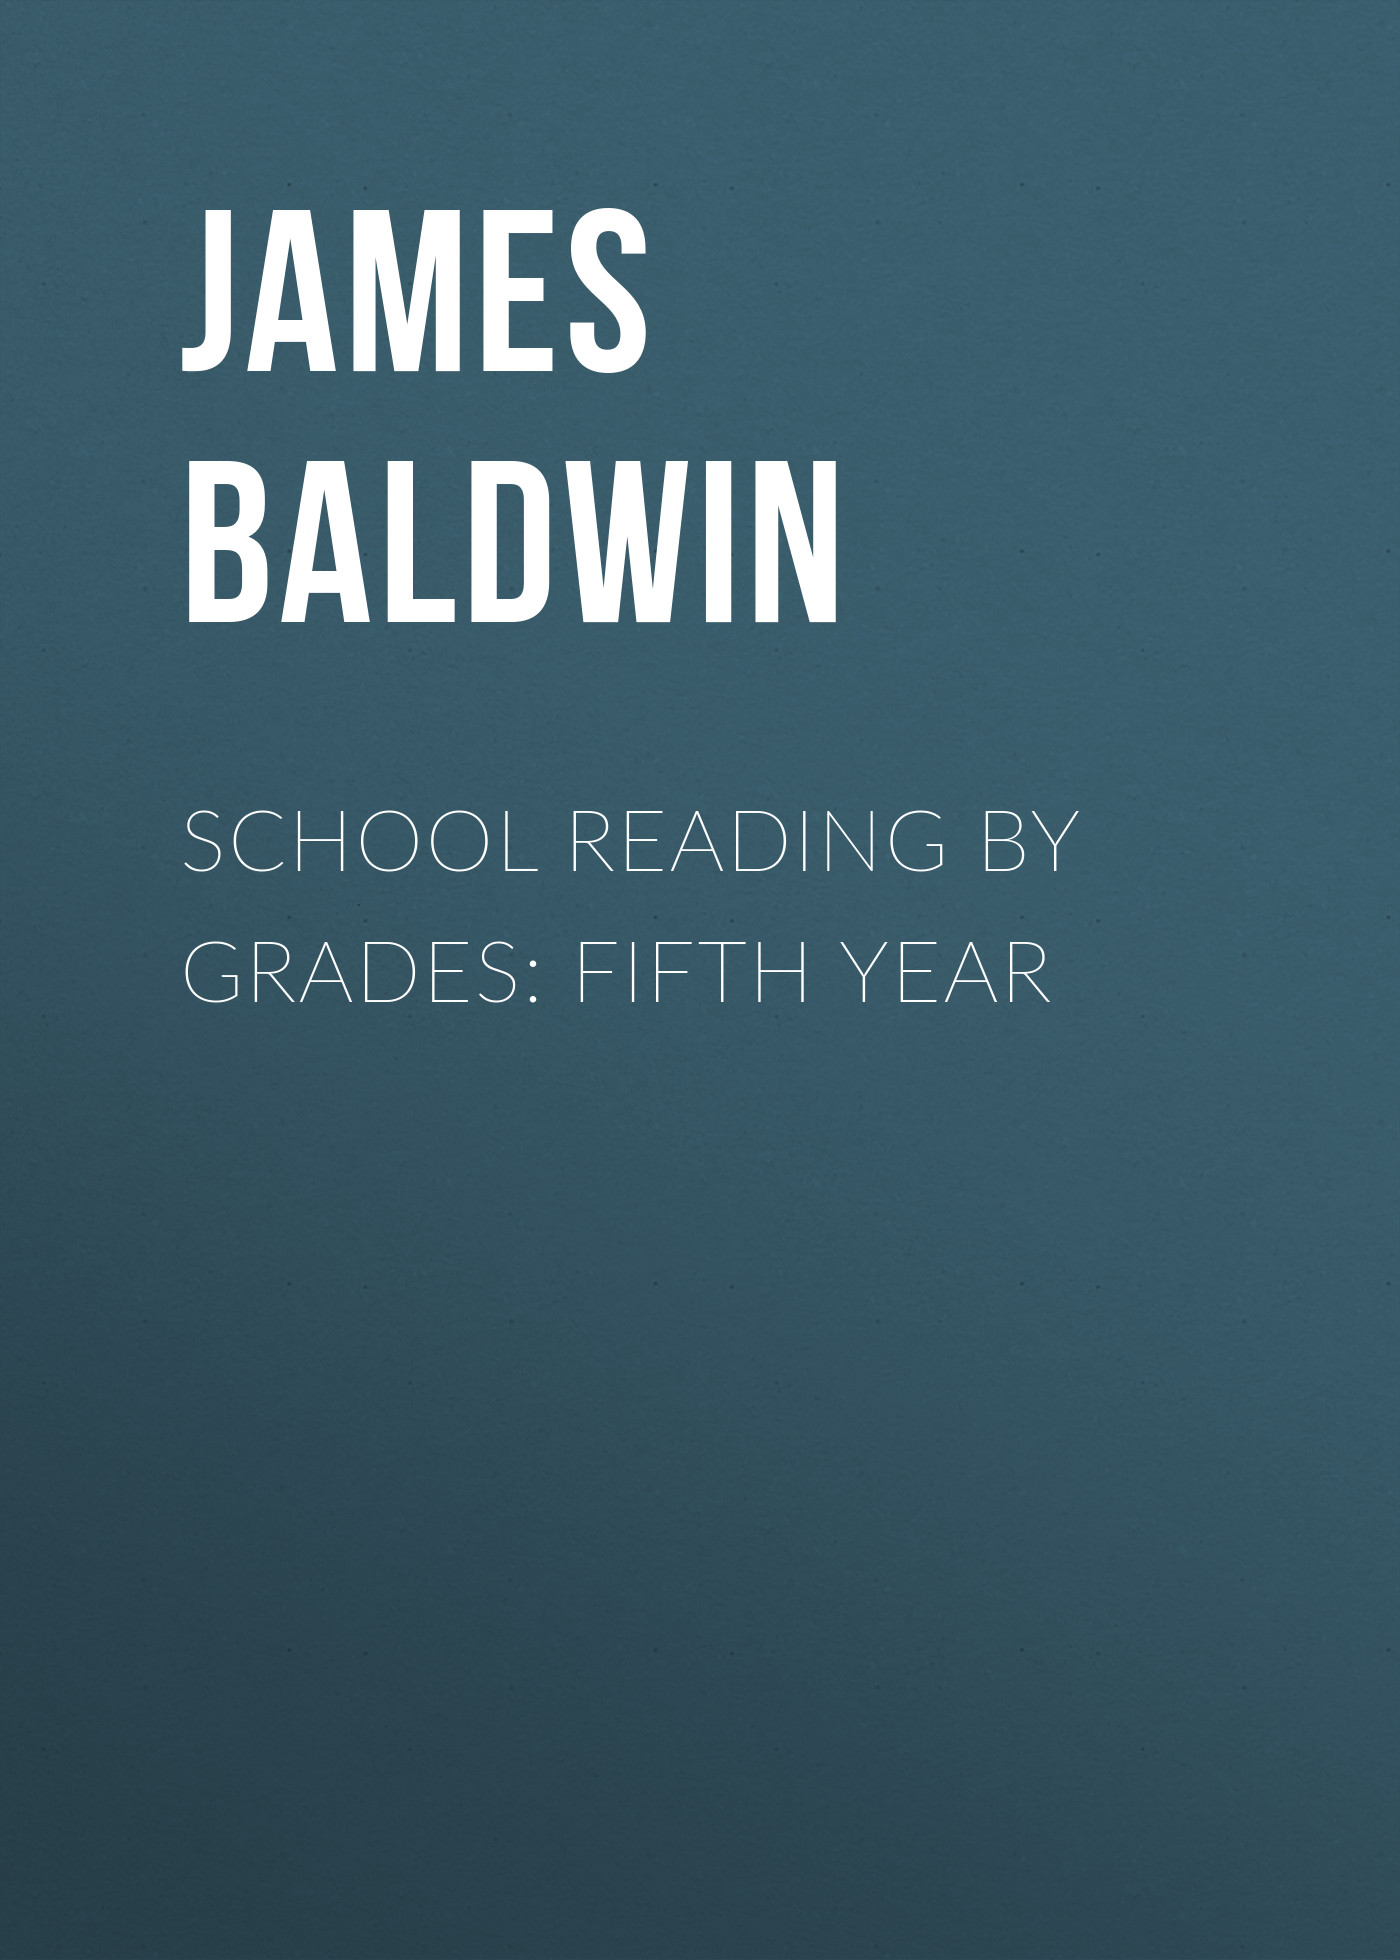 Baldwin James School Reading By Grades: Fifth Year baldwin james school reading by grades fifth year